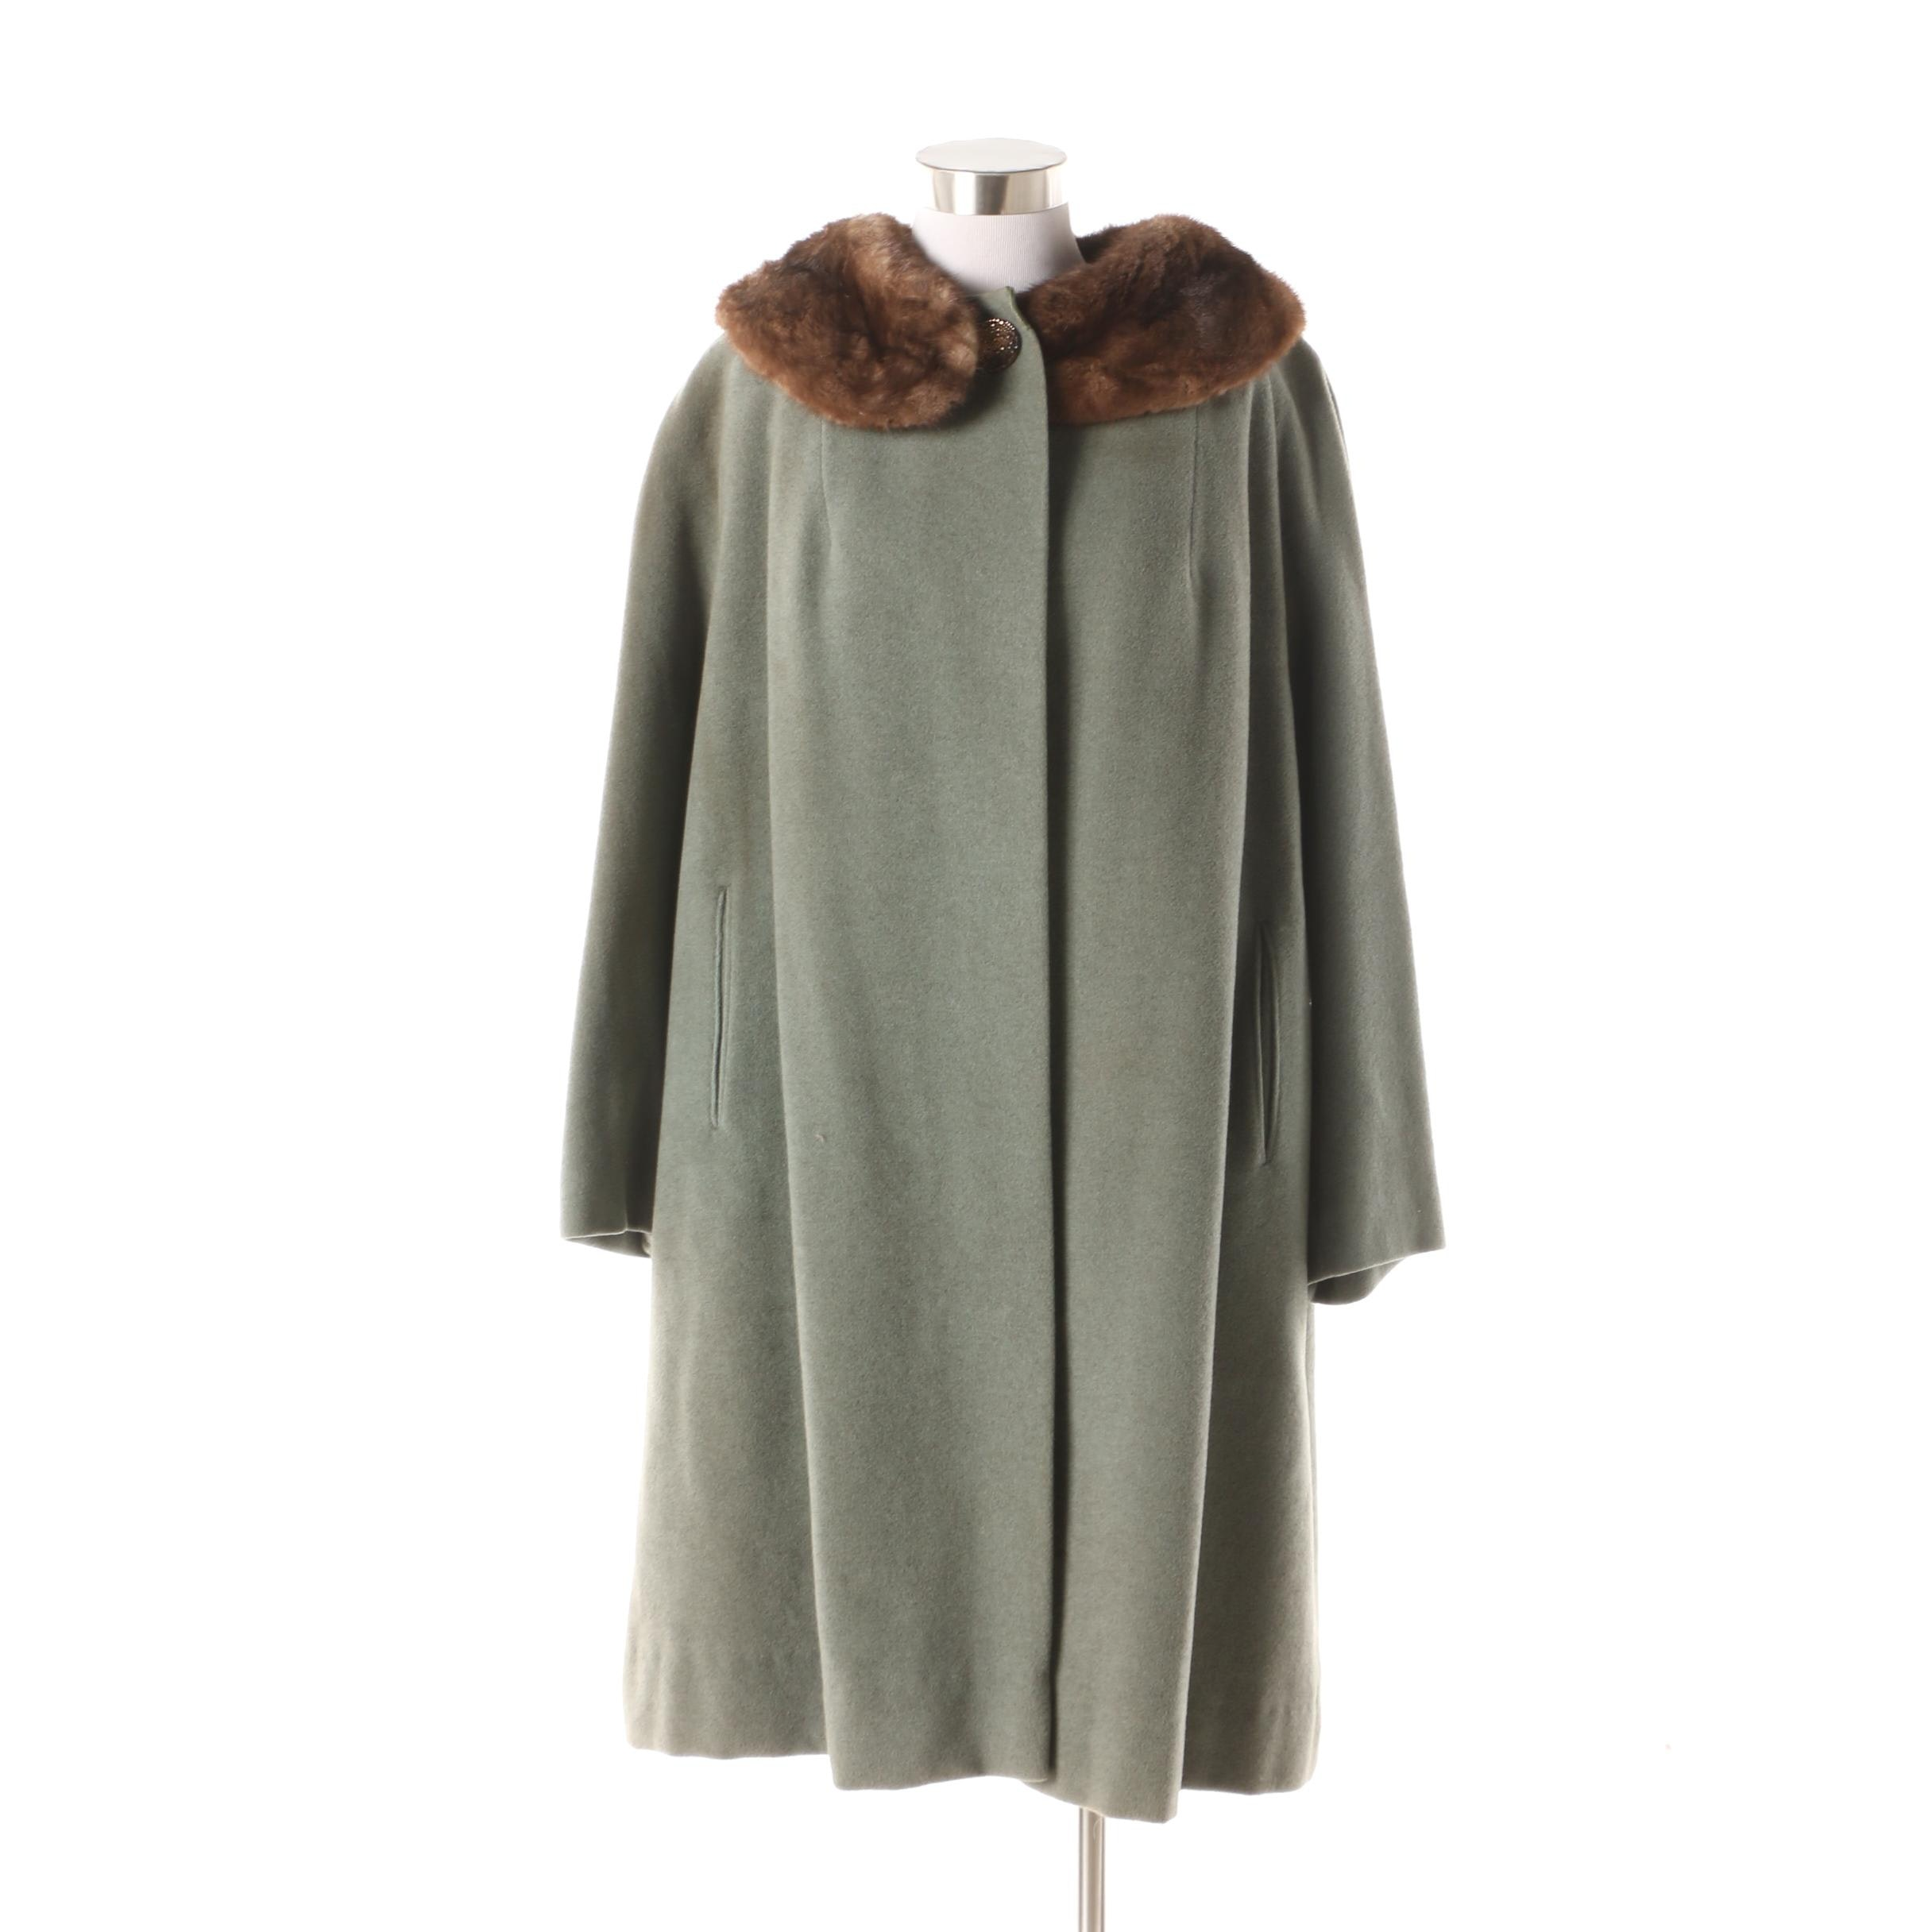 Women's Circa 1960s Vintage Shagmoor Wool Coat with Mink Fur Collar